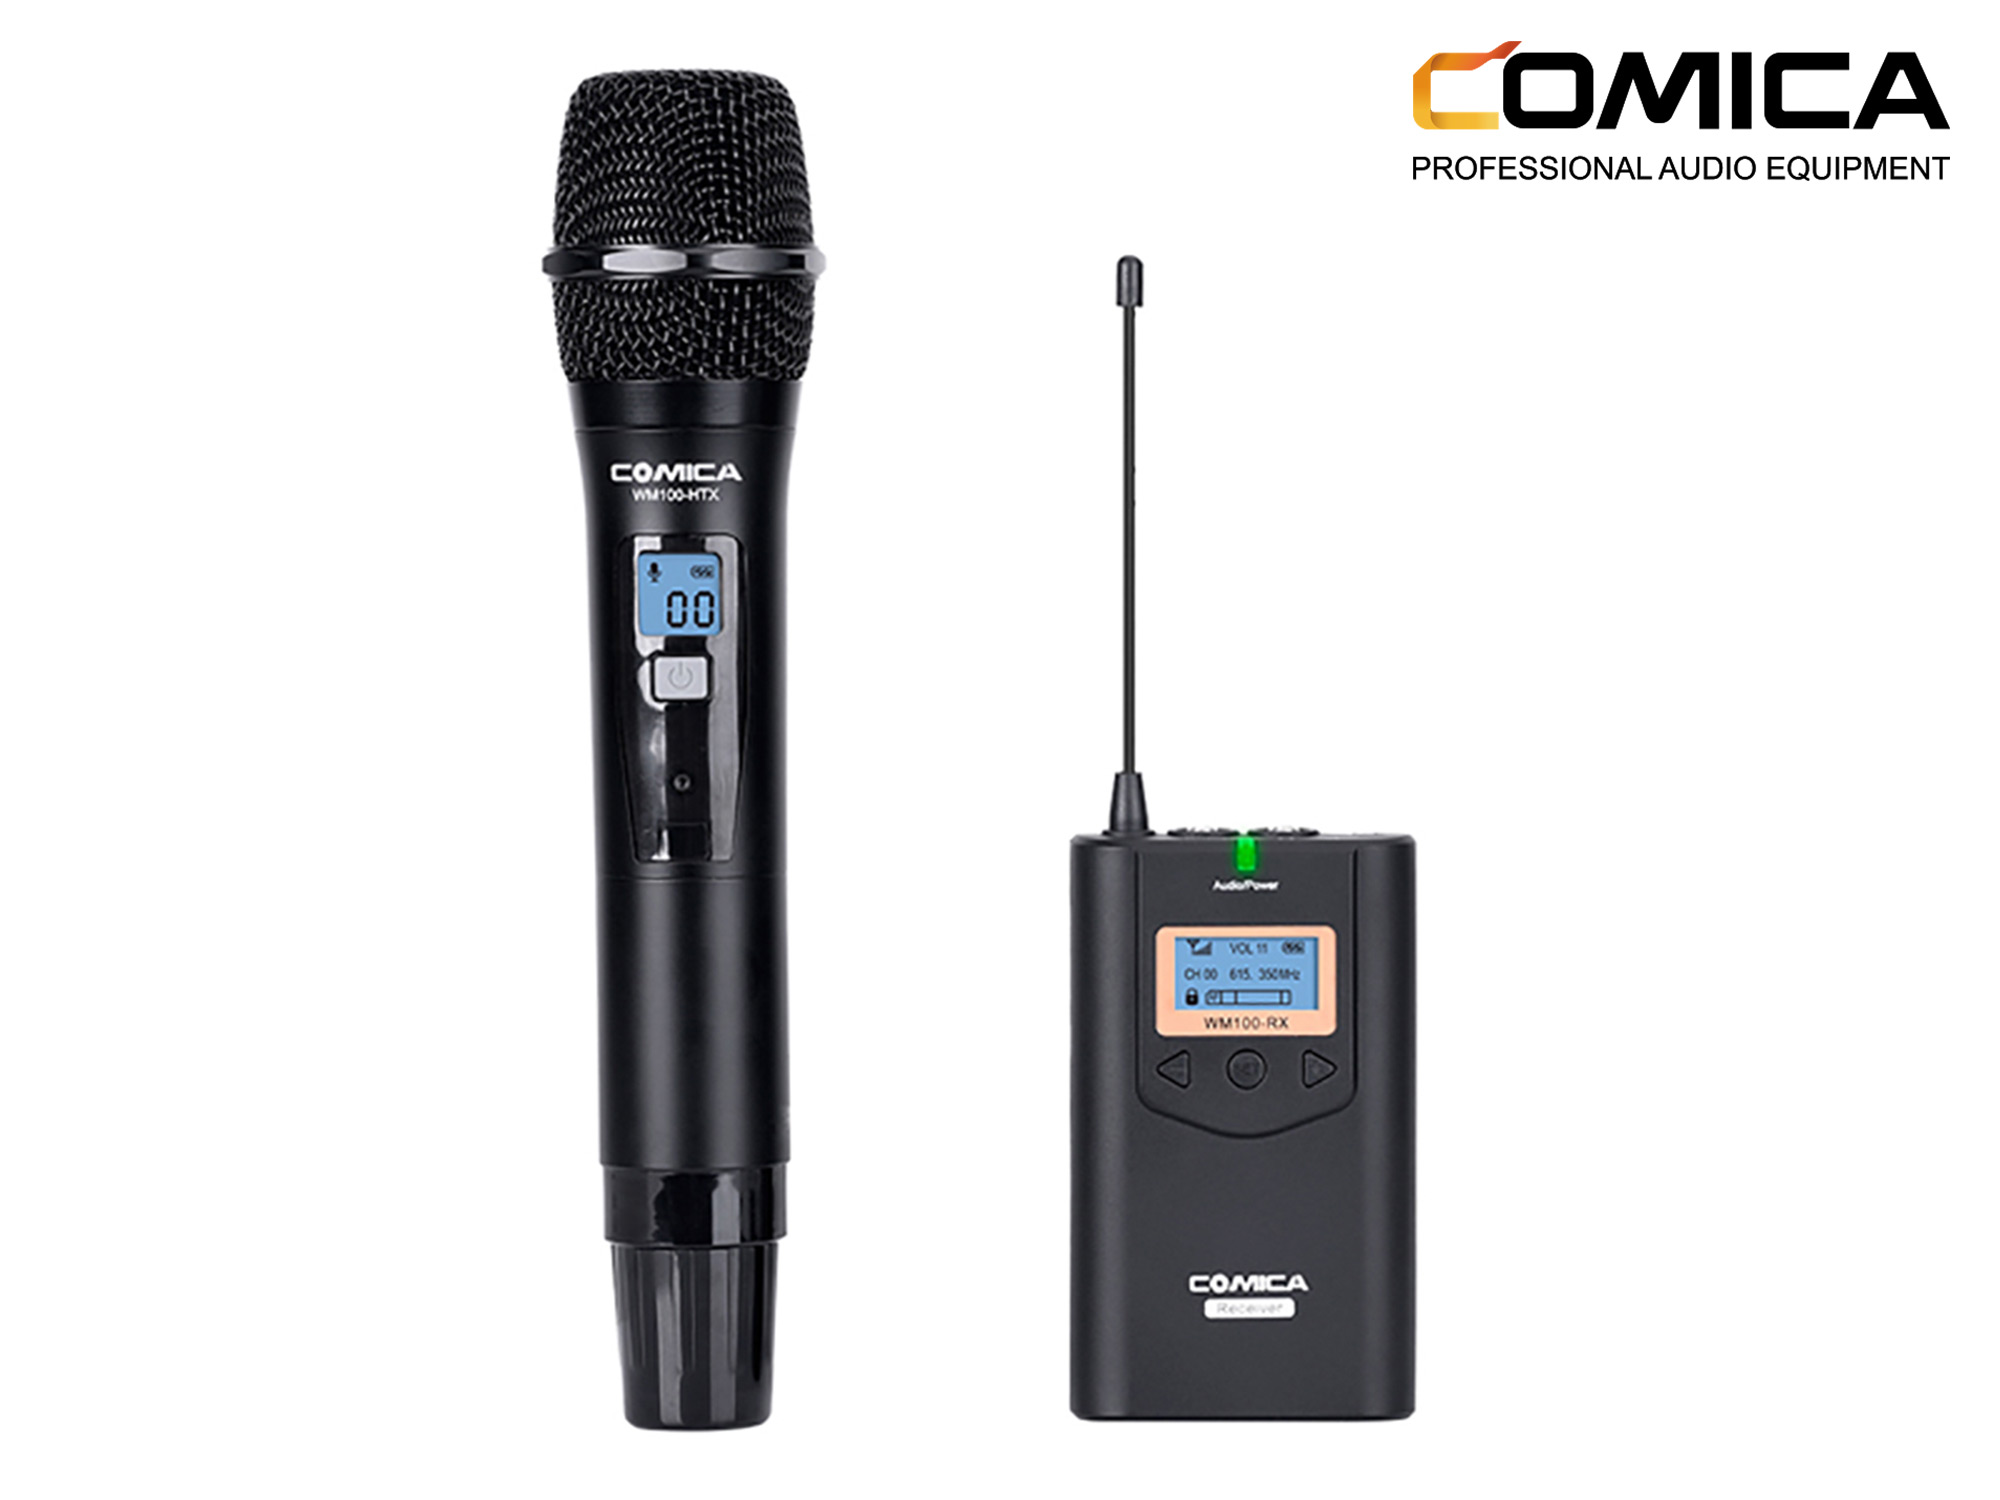 Comica CVM-WM100H Professional Wireless Handhold Microphone 48 Channels 100M